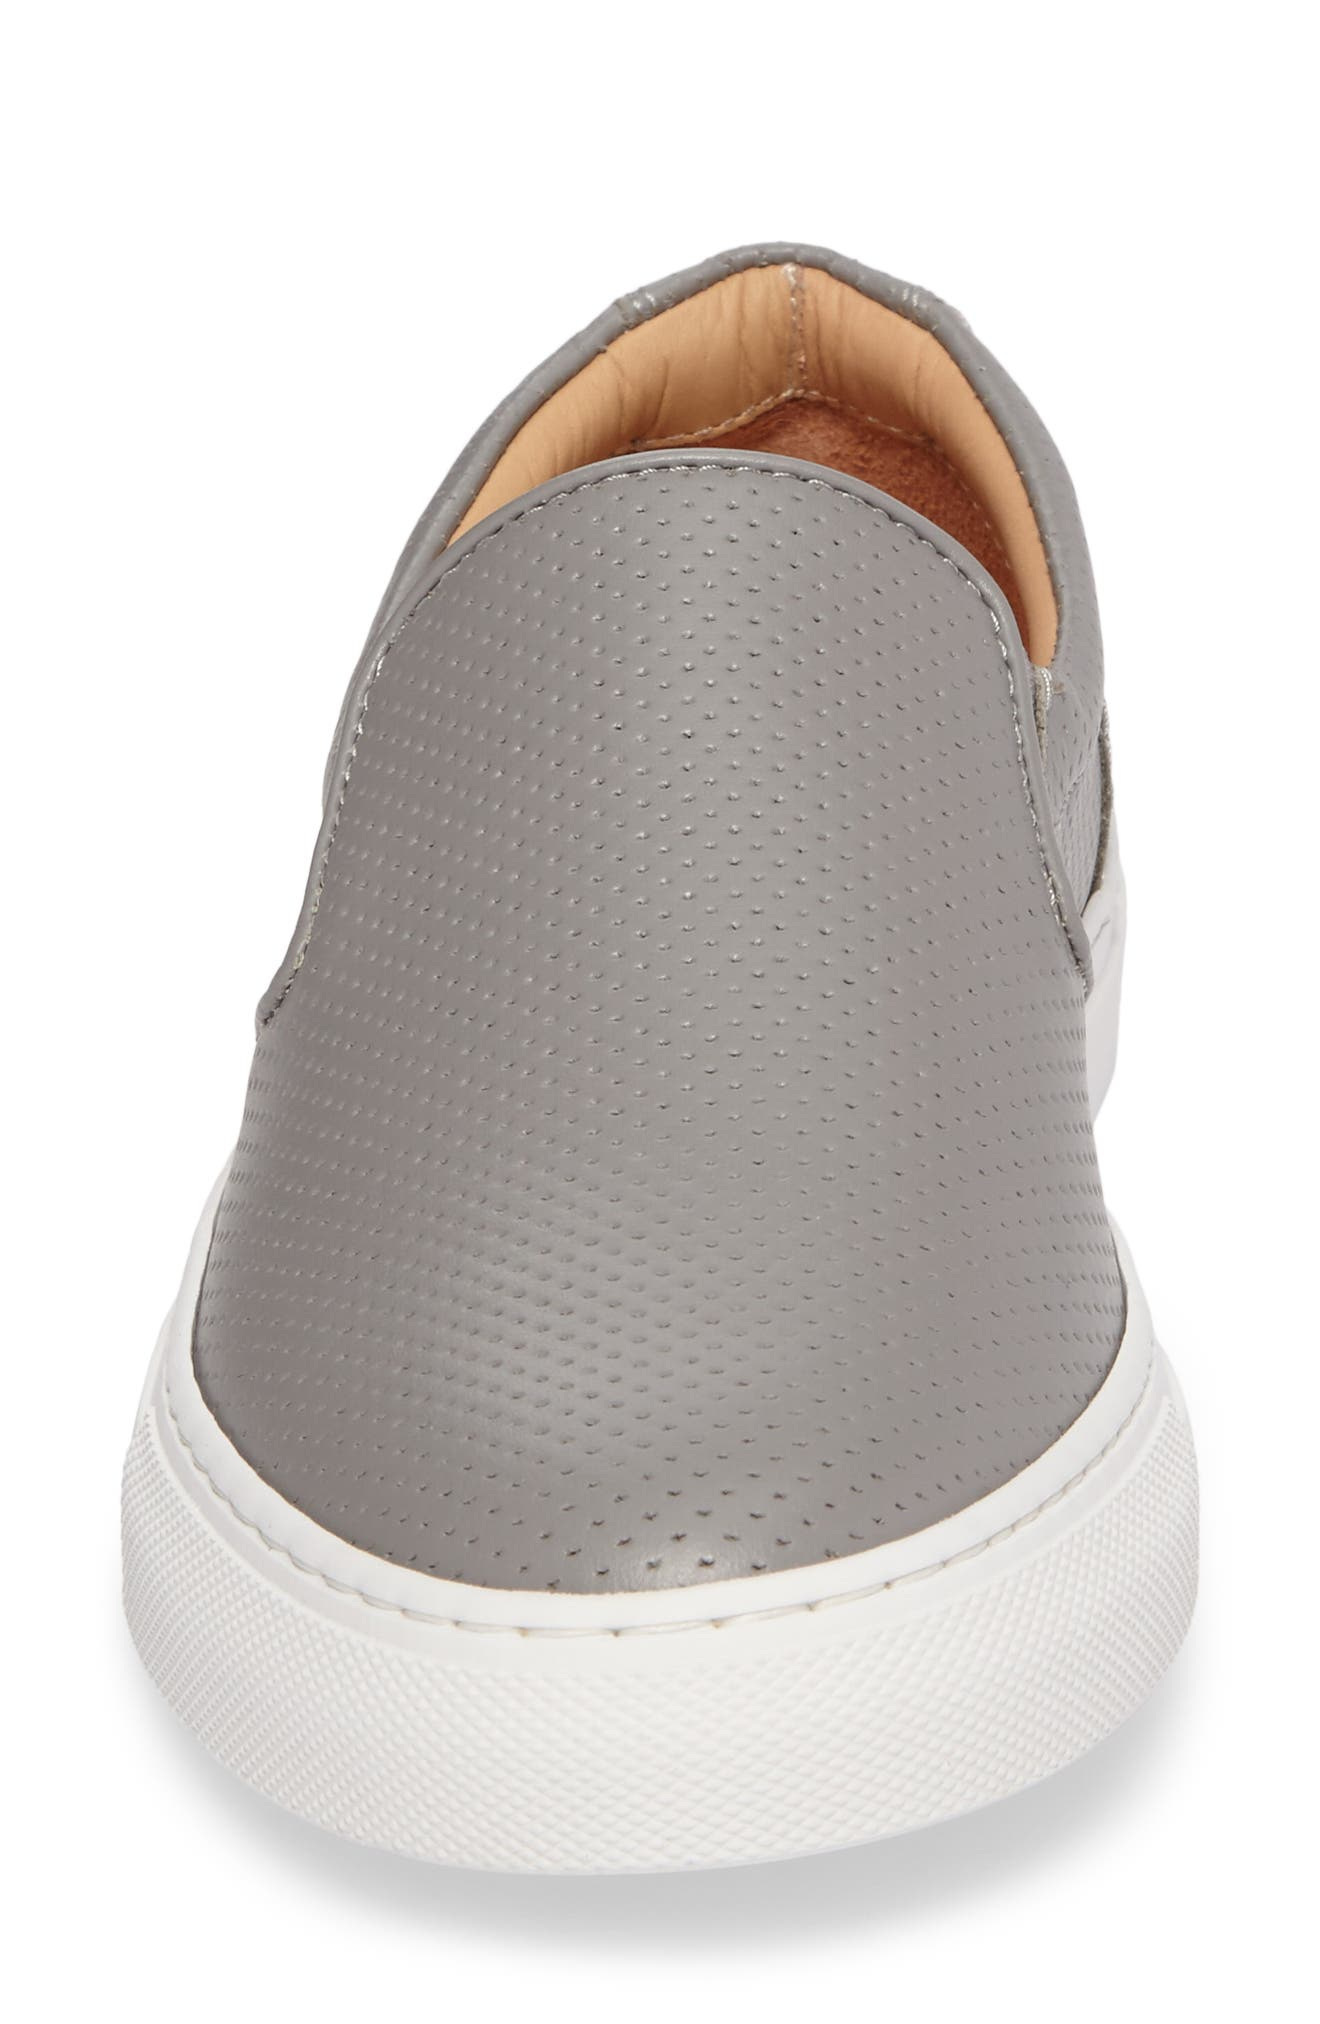 Wooster Slip-On Sneaker,                             Alternate thumbnail 4, color,                             GREY PERFORATED